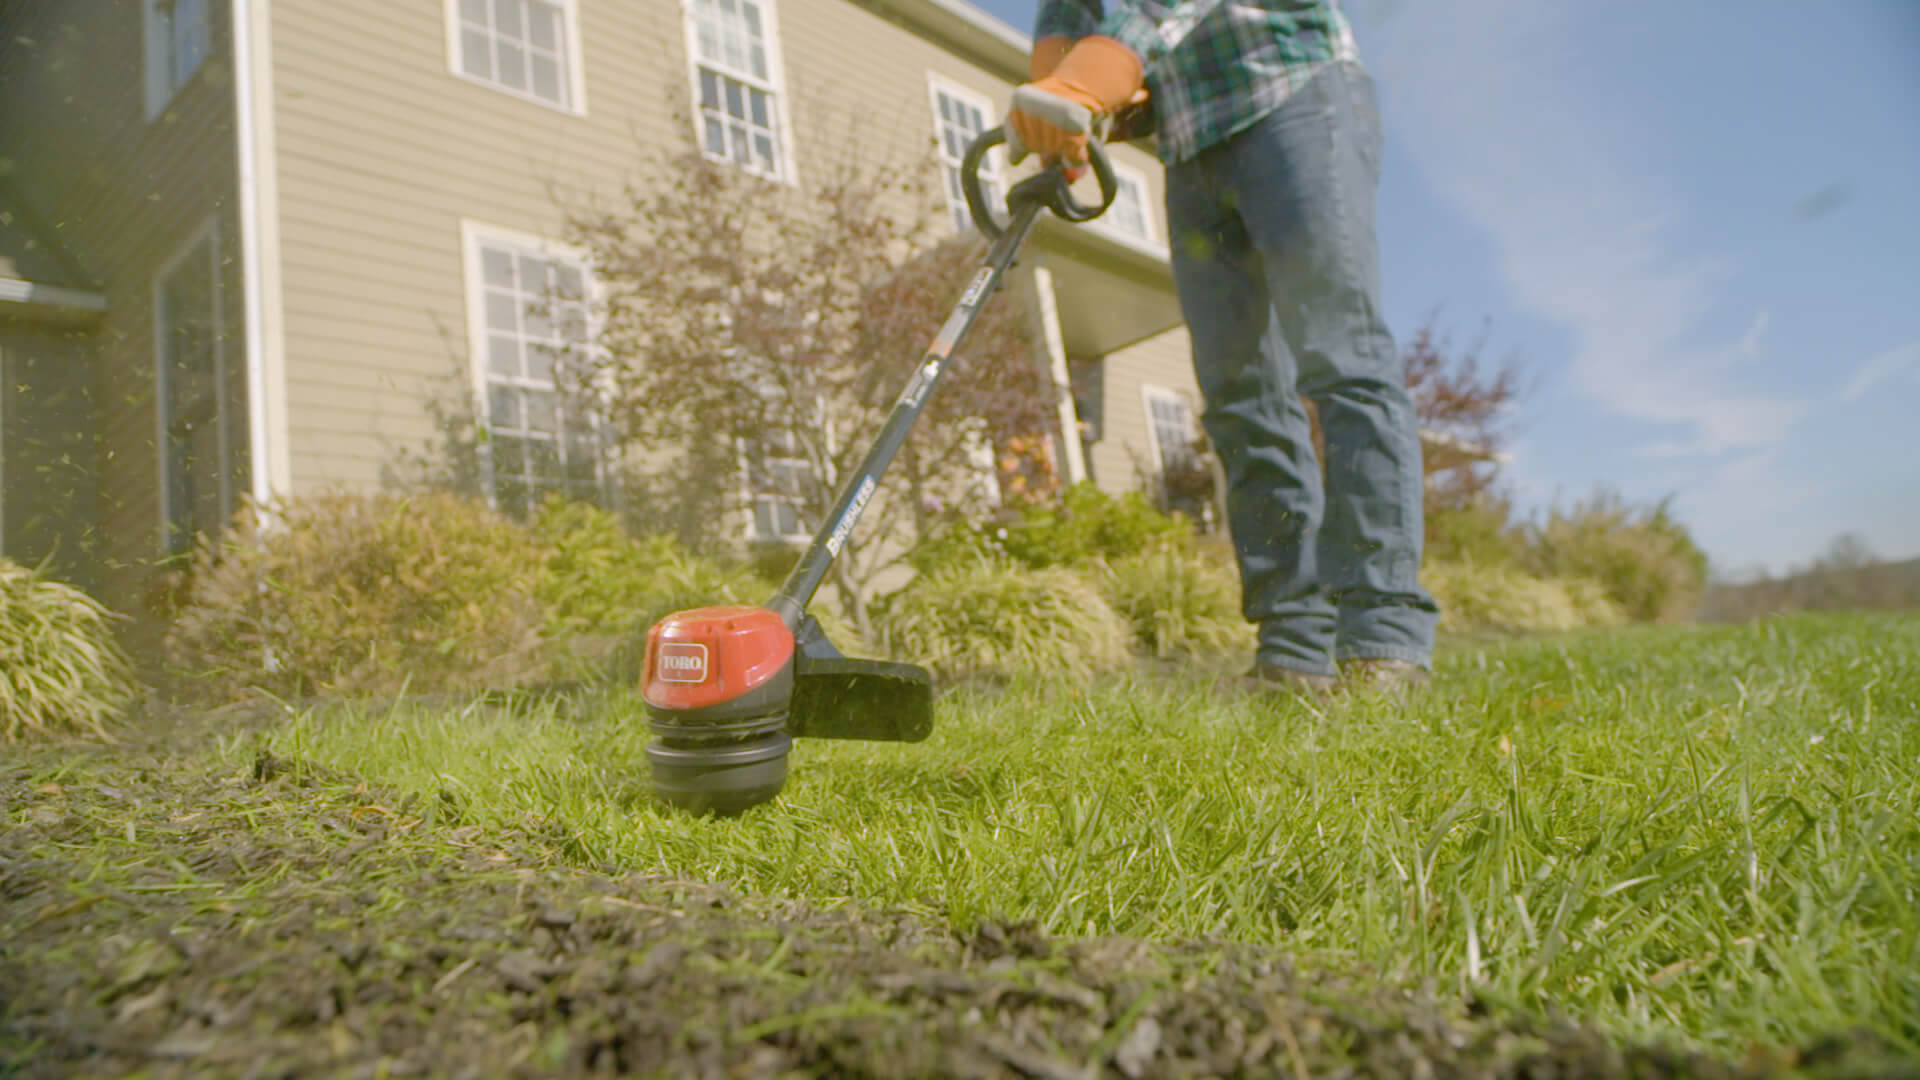 Toro String Trimmer being used